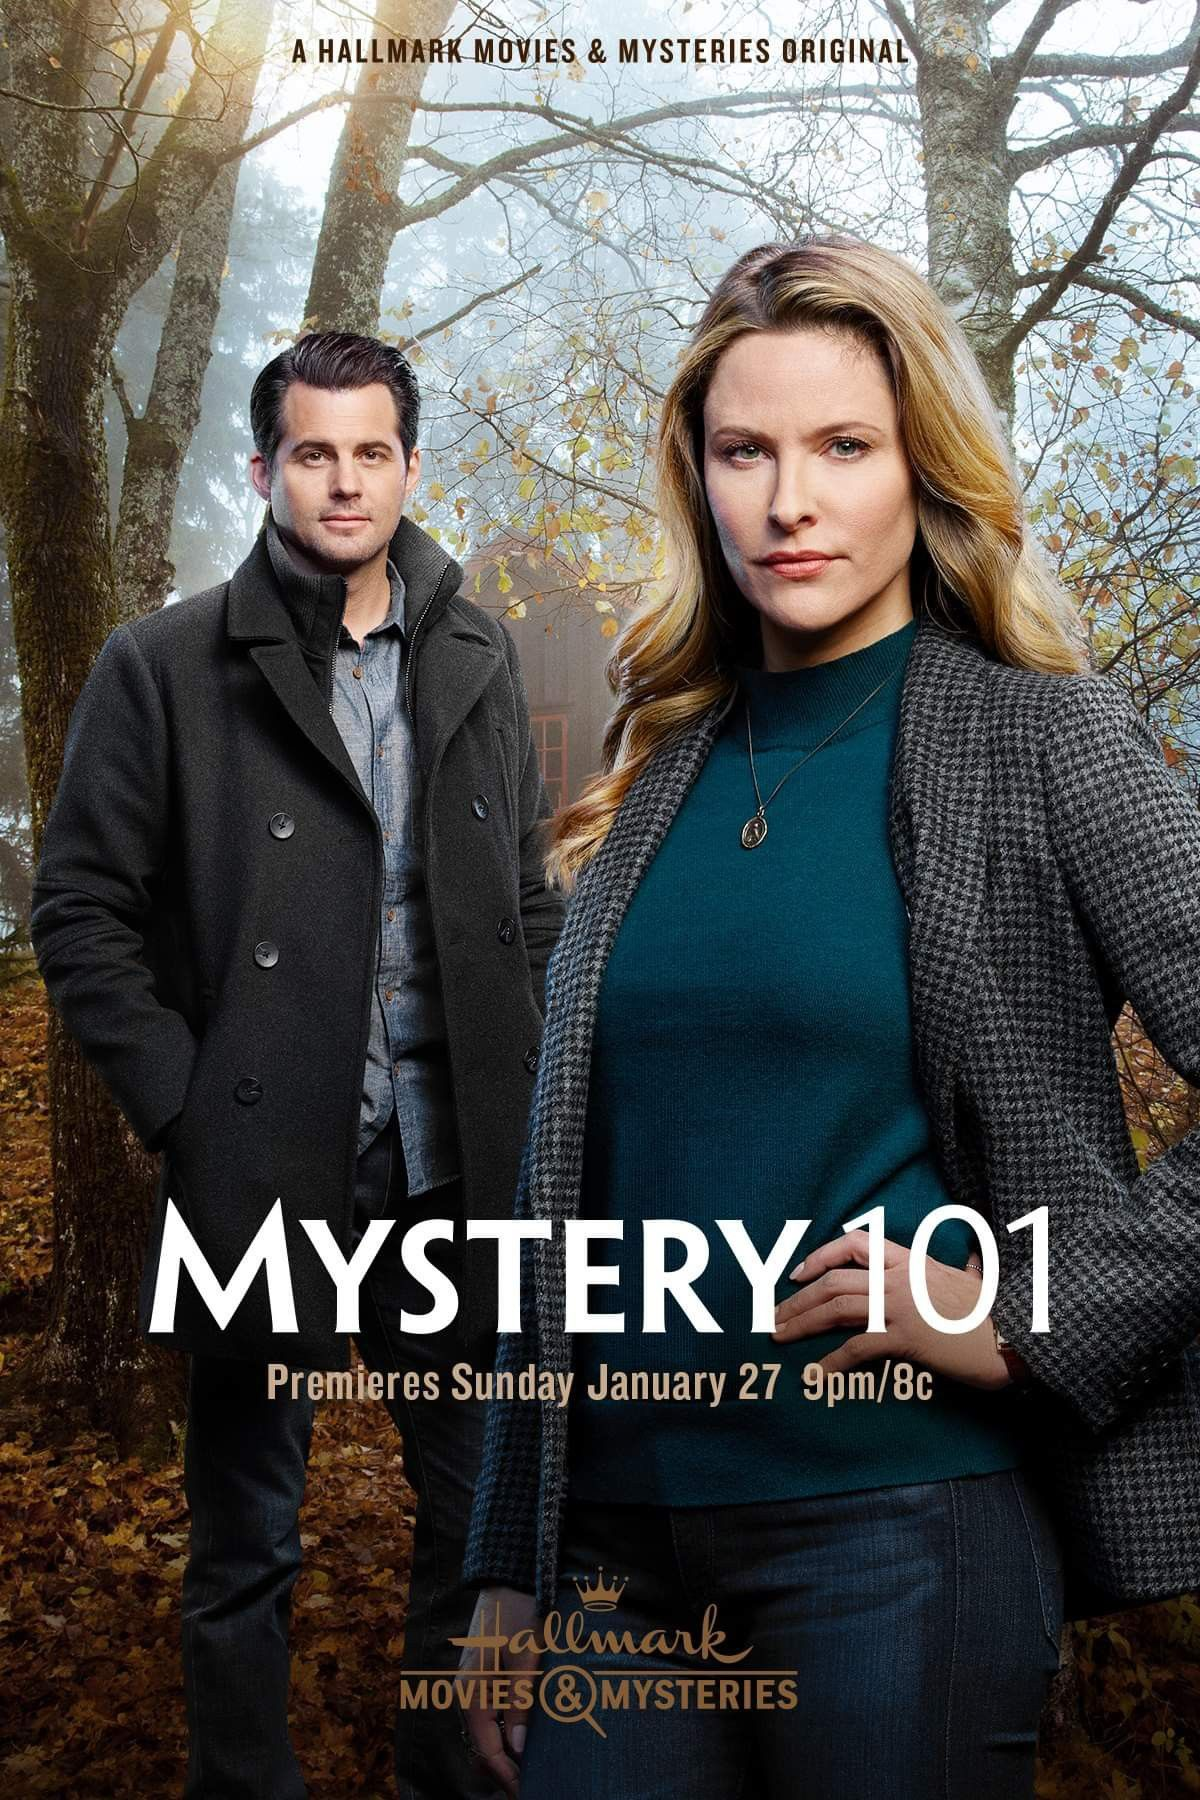 A New Hallmark Series 2019 On The Mystery Channel So Far Very